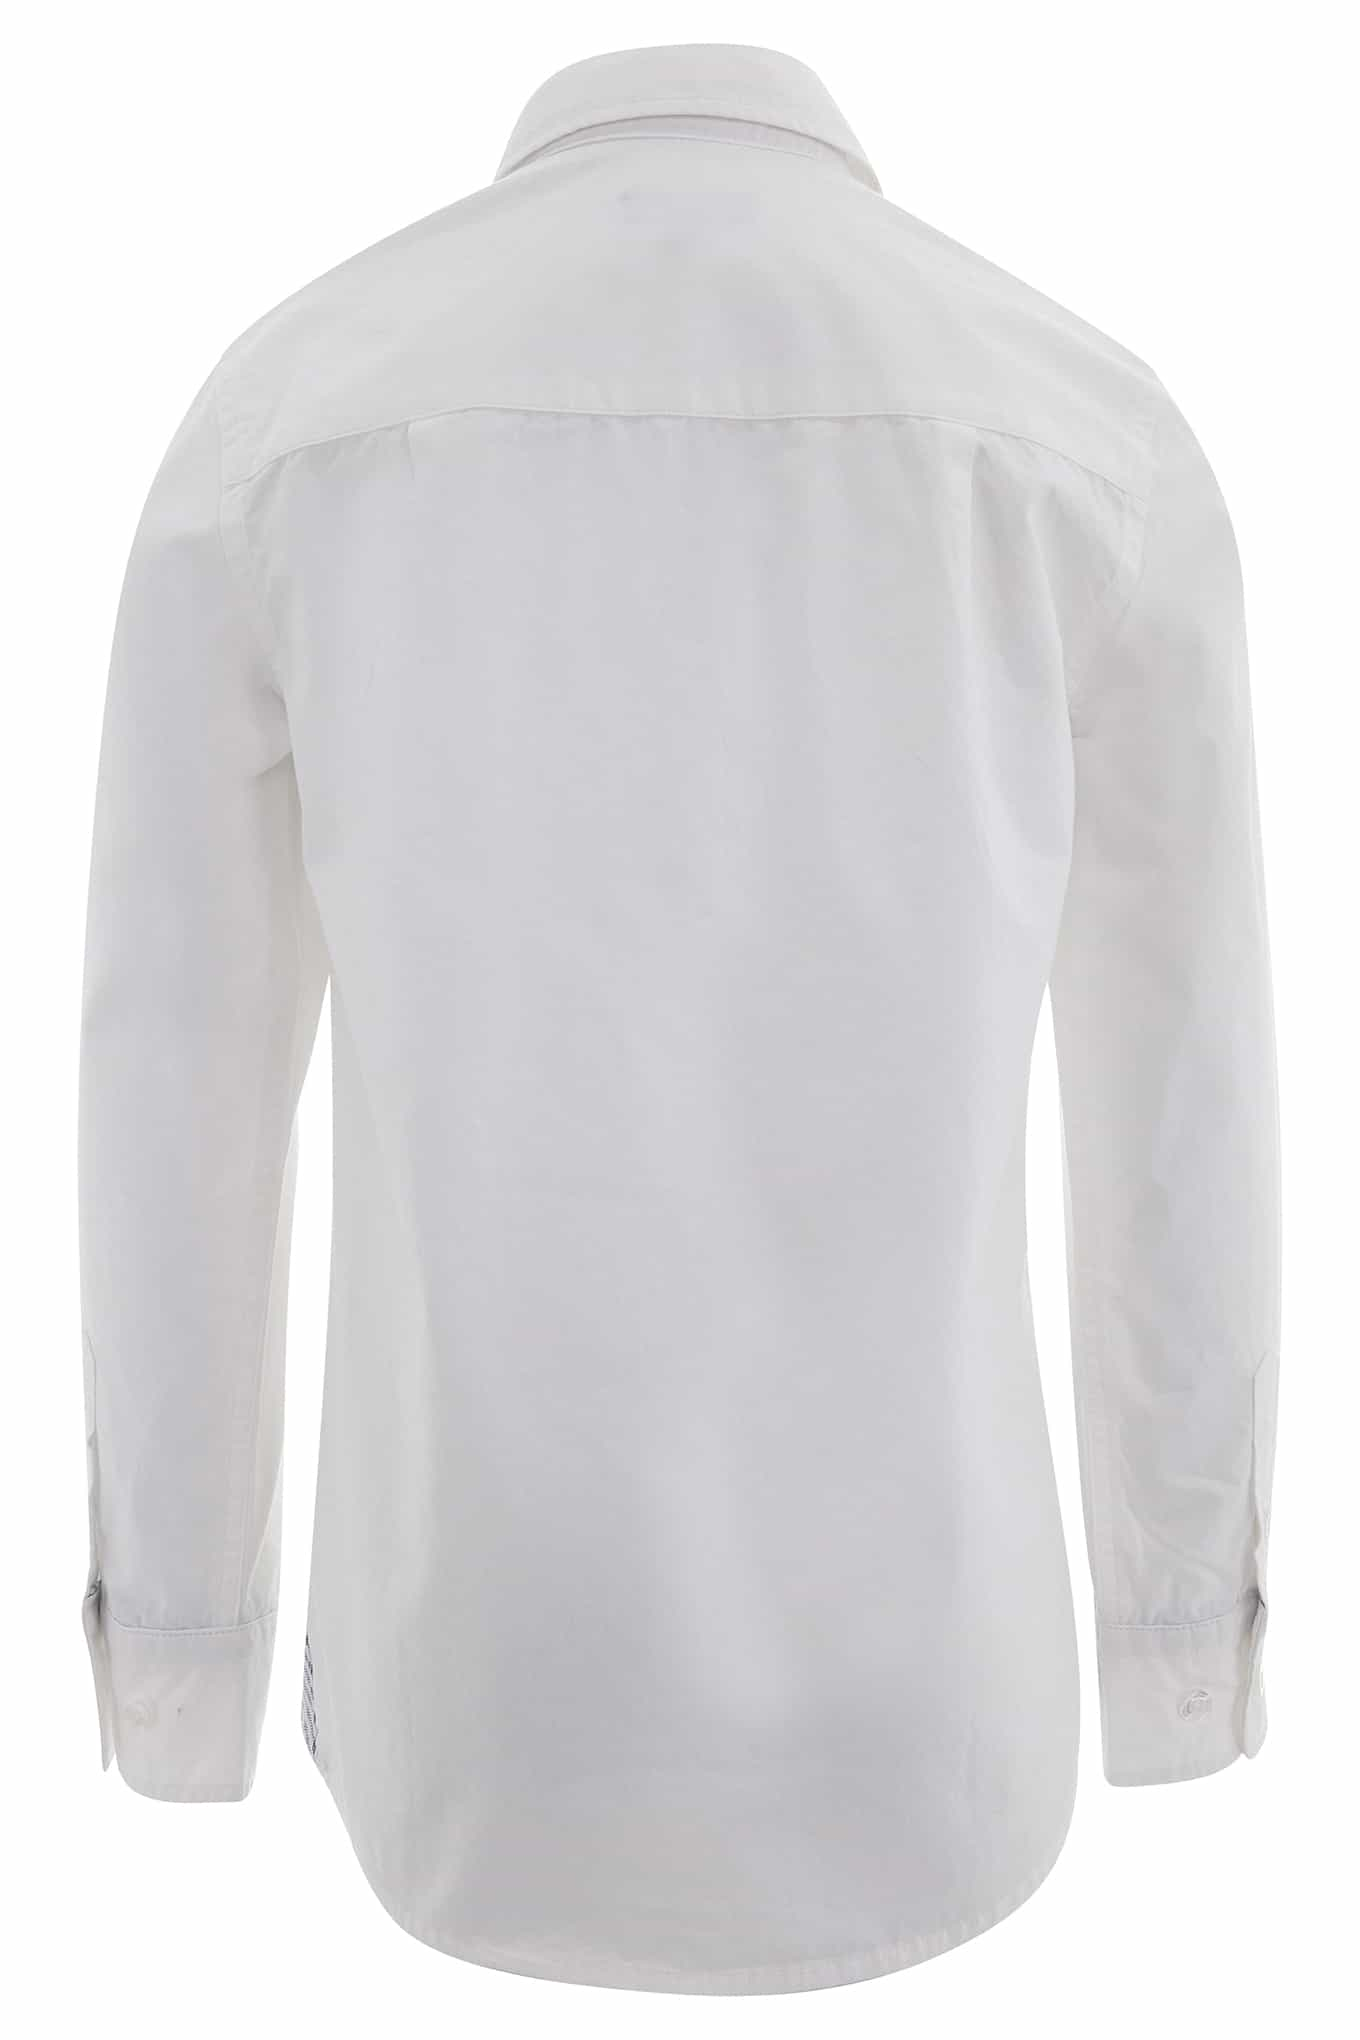 Shirt White Casual Boy